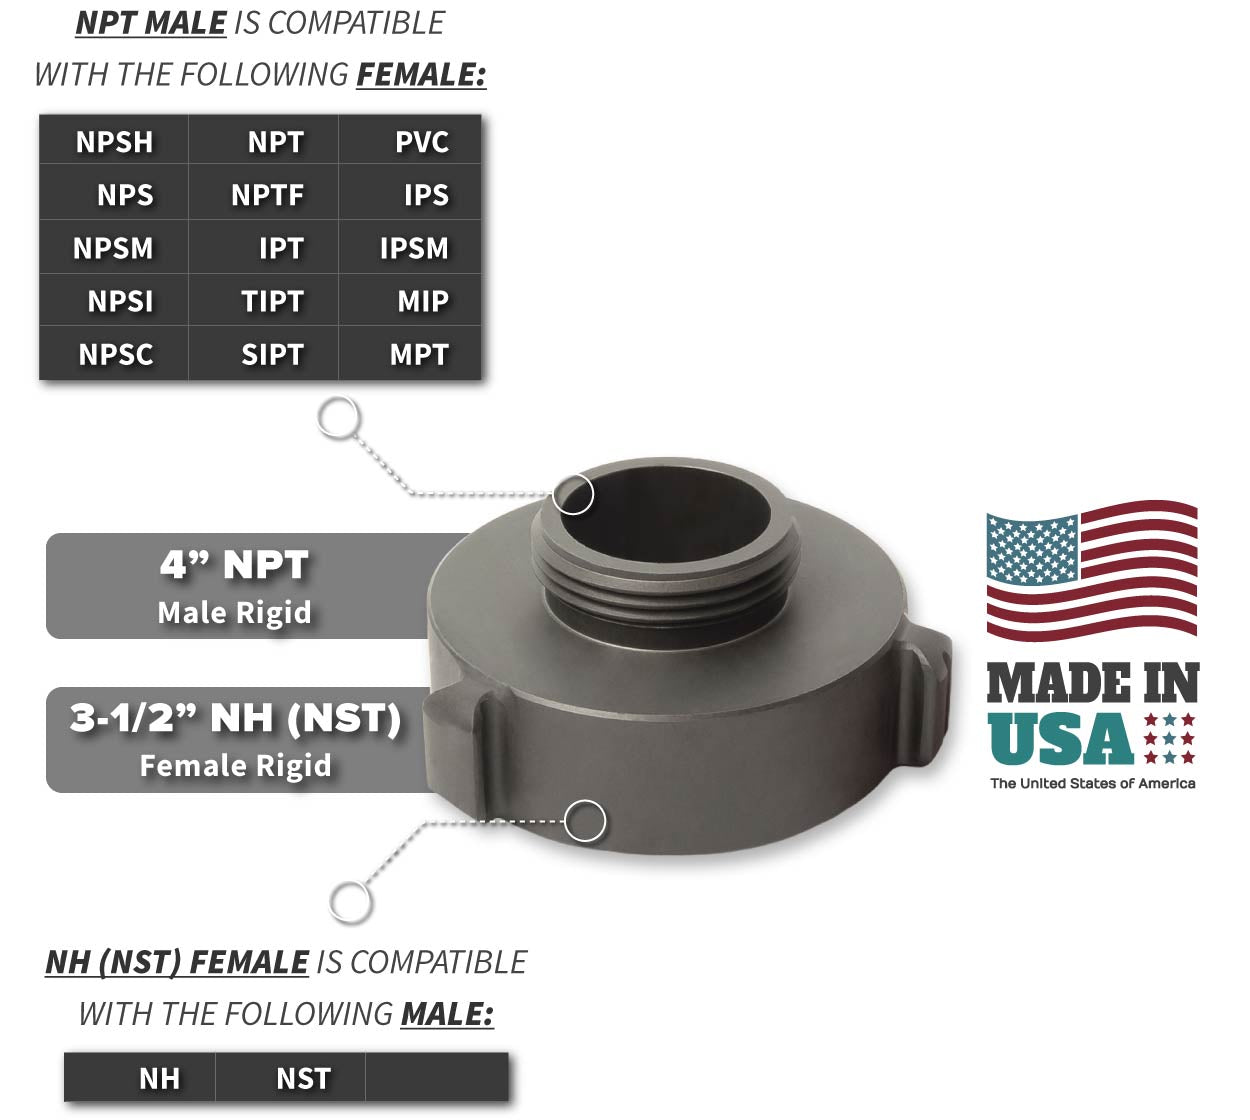 3.5 Inch NH-NST Female x 4 Inch NPT Male Compatibility Thread Chart